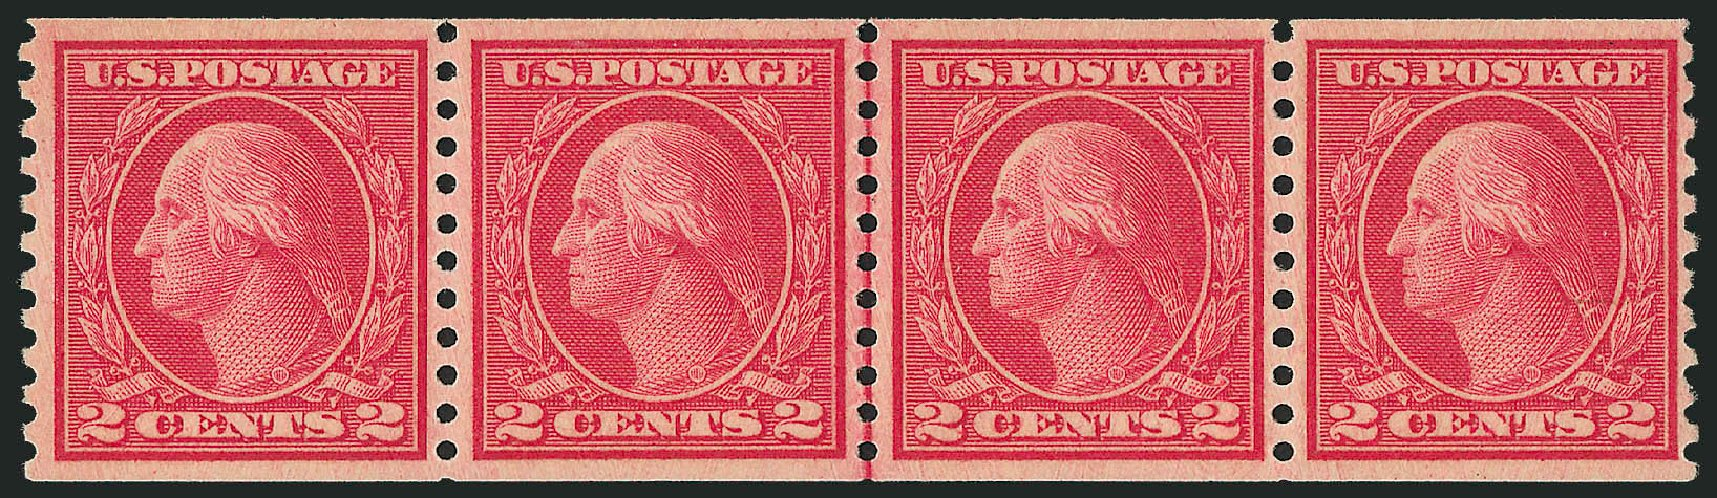 US Stamp Price Scott #492 - 1917 2c Washington Coil Perf 10 Vertically. Robert Siegel Auction Galleries, Sep 2009, Sale 976, Lot 2091